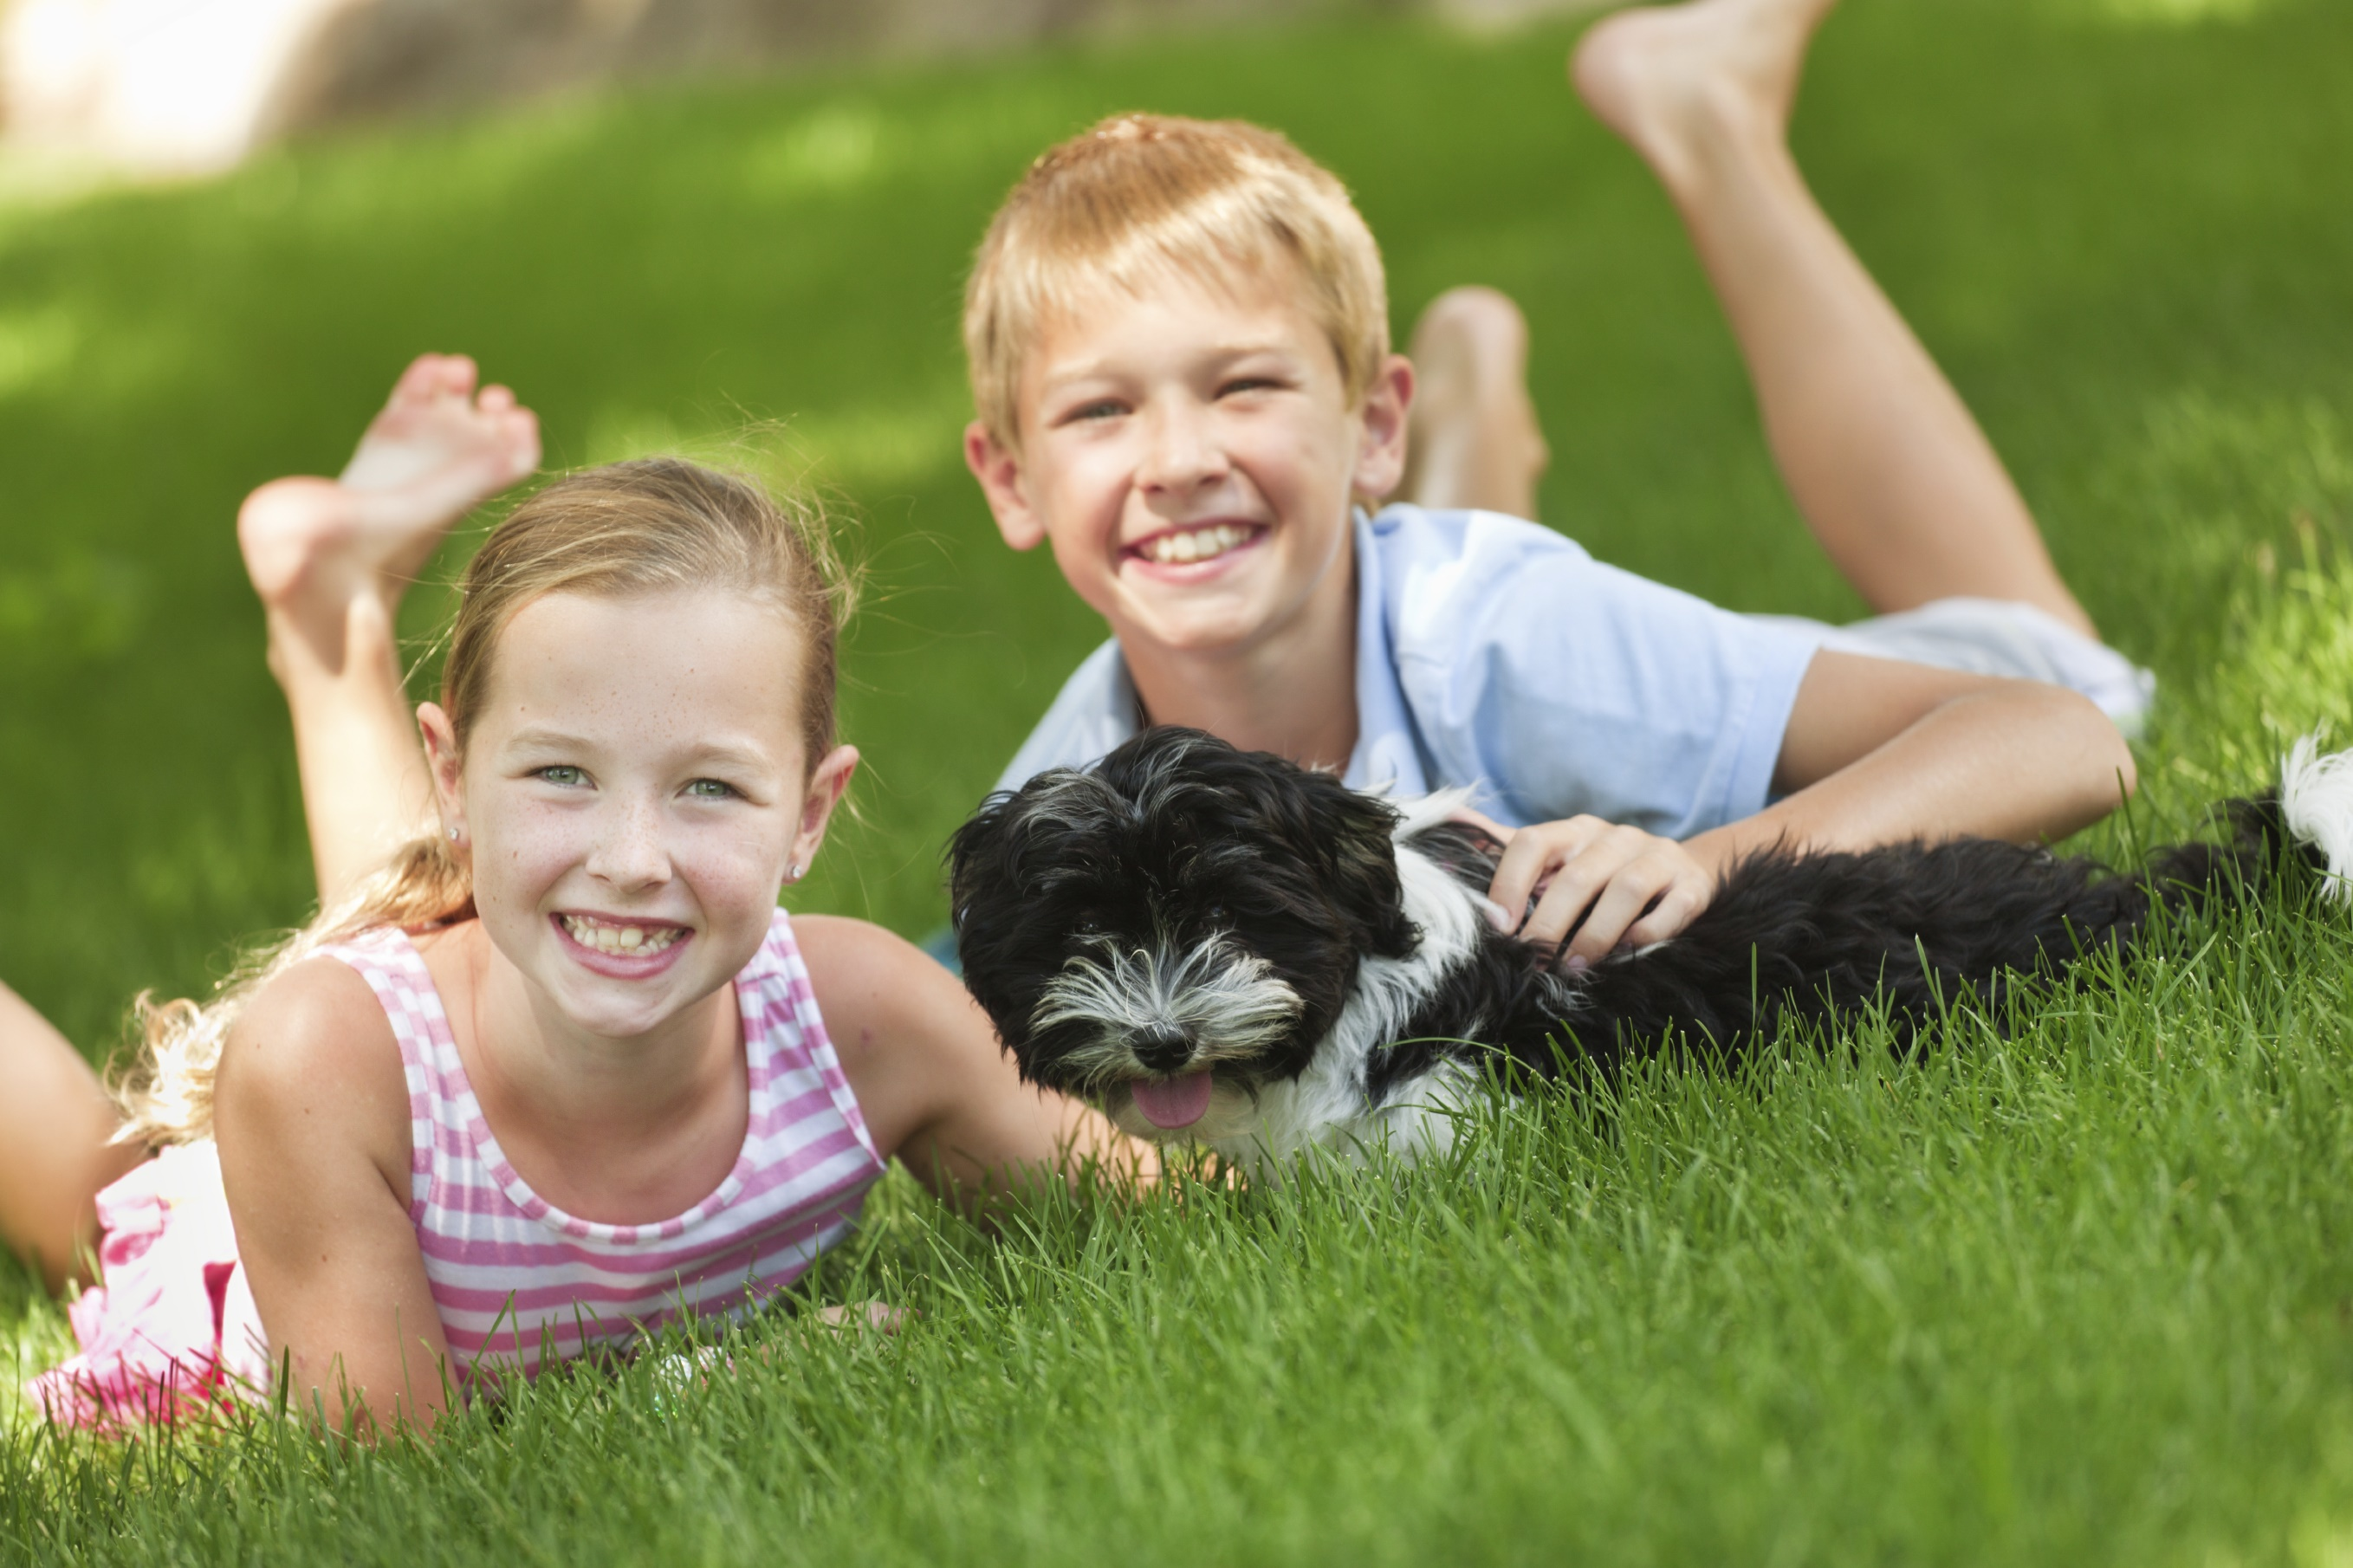 2 children playing in grass with dog